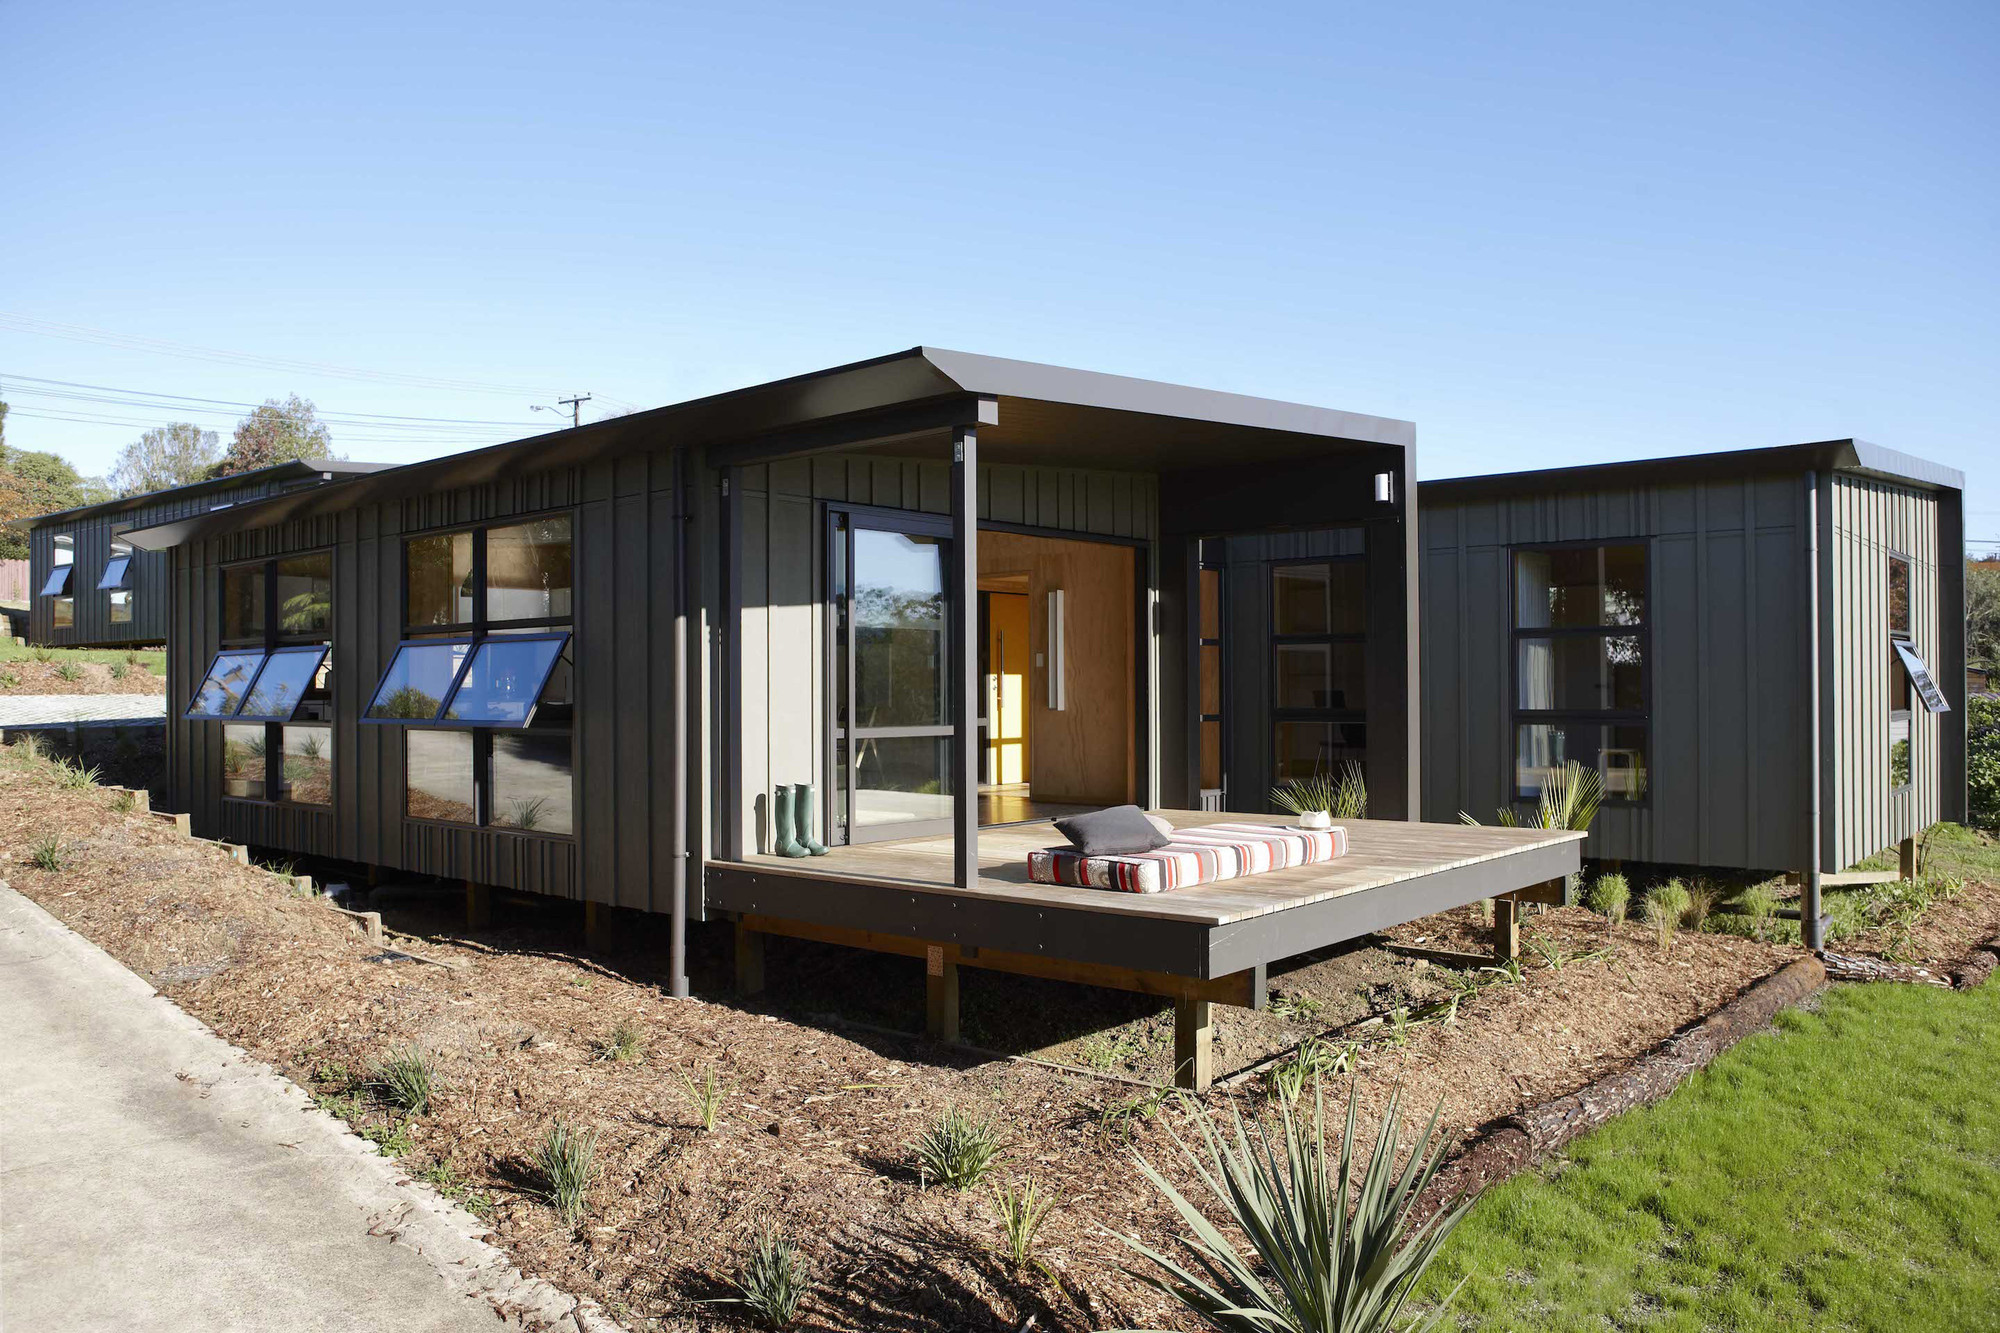 Tiny Home Designs: Architecture Students Also Design And Build Two Community